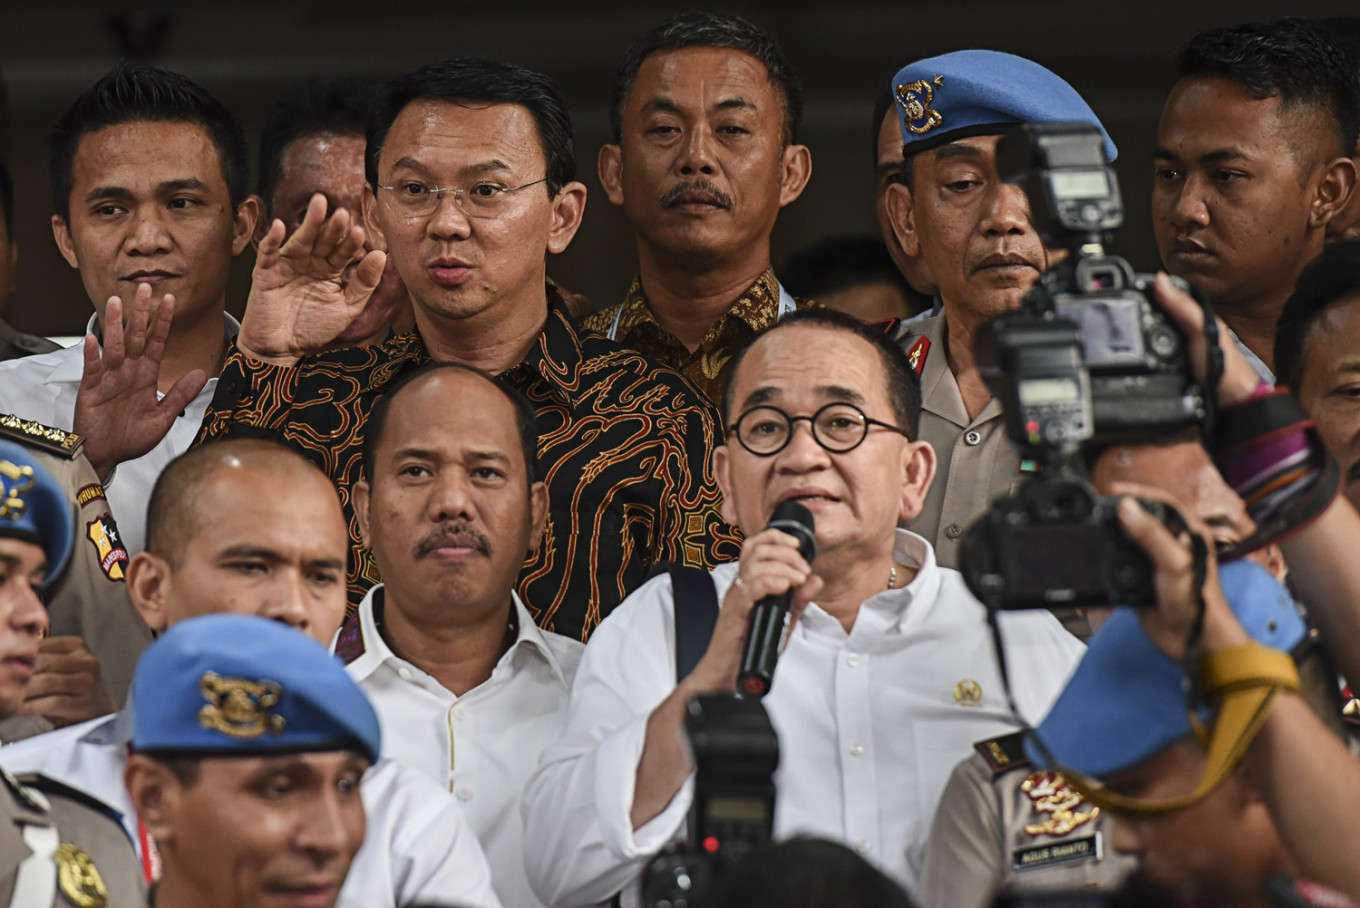 Police to hold public case screening over Ahok's blasphemy allegations Tuesday